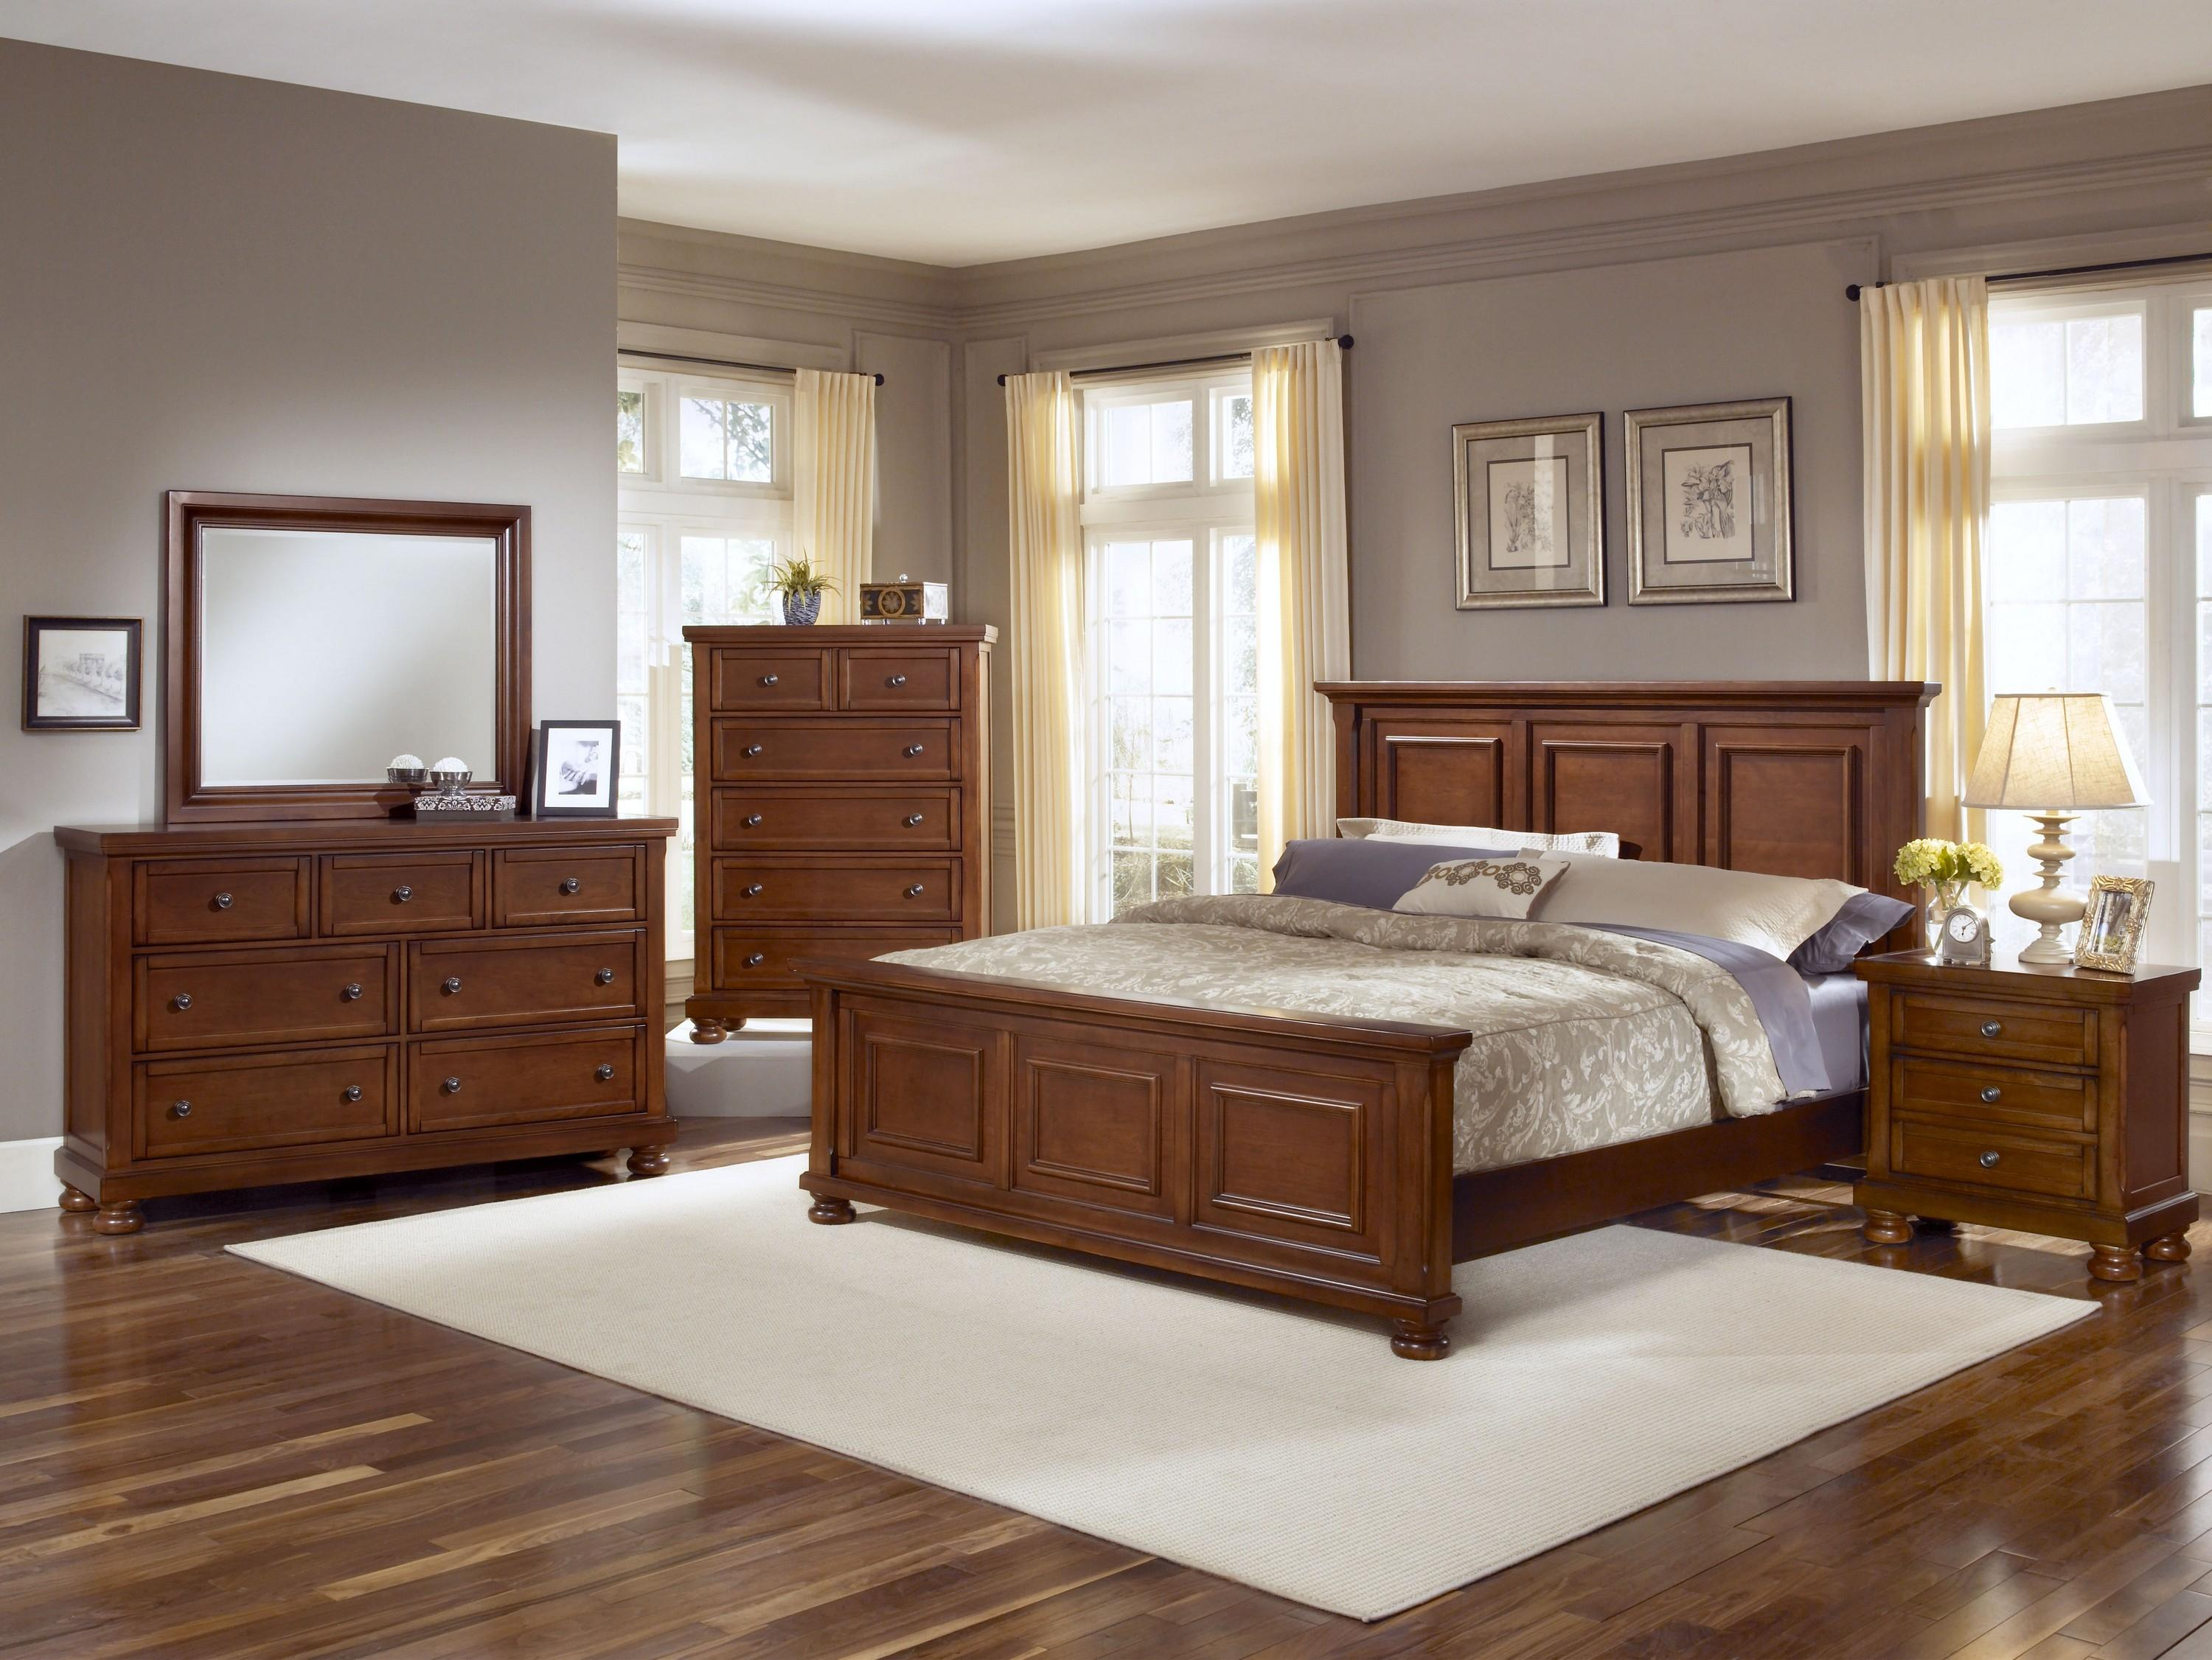 Vaughan bassett reflections full mansion bed great american home store panel beds for Discontinued bassett bedroom furniture